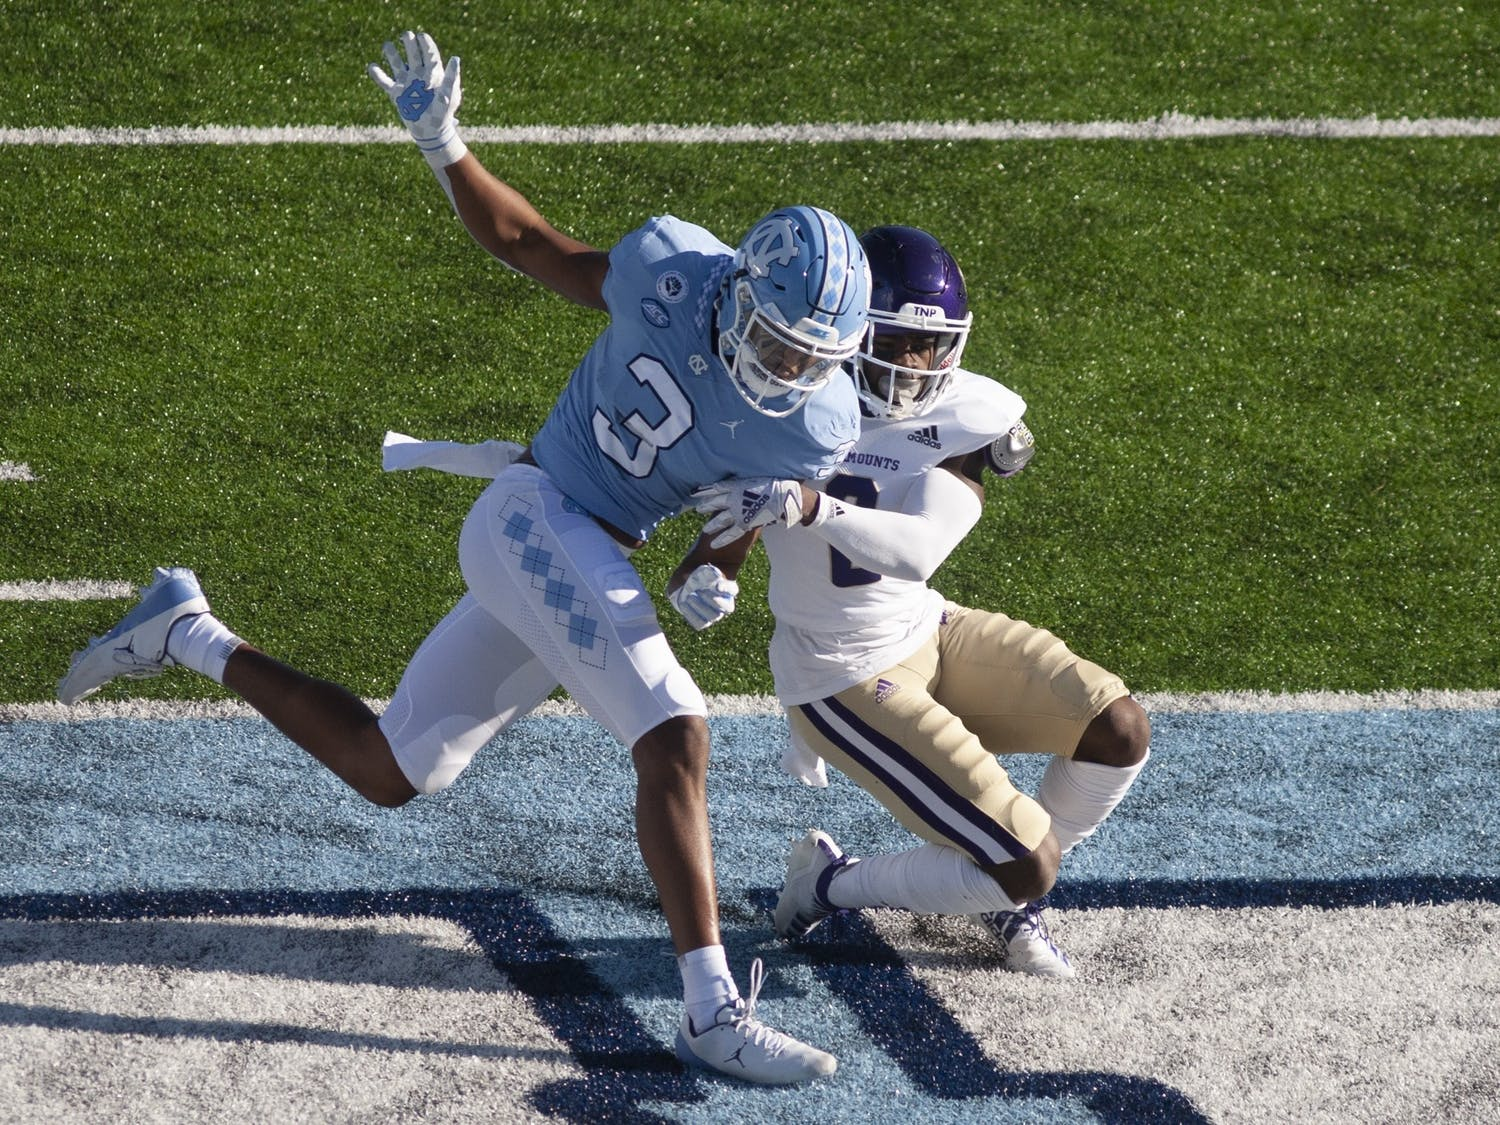 Western Carolina's redshirt sophomore center back  Aaron Gethers (2) tackles UNC's  junior wide receiver Antoine Green (3) in the end zone. UNC defeated WCU 49-9.